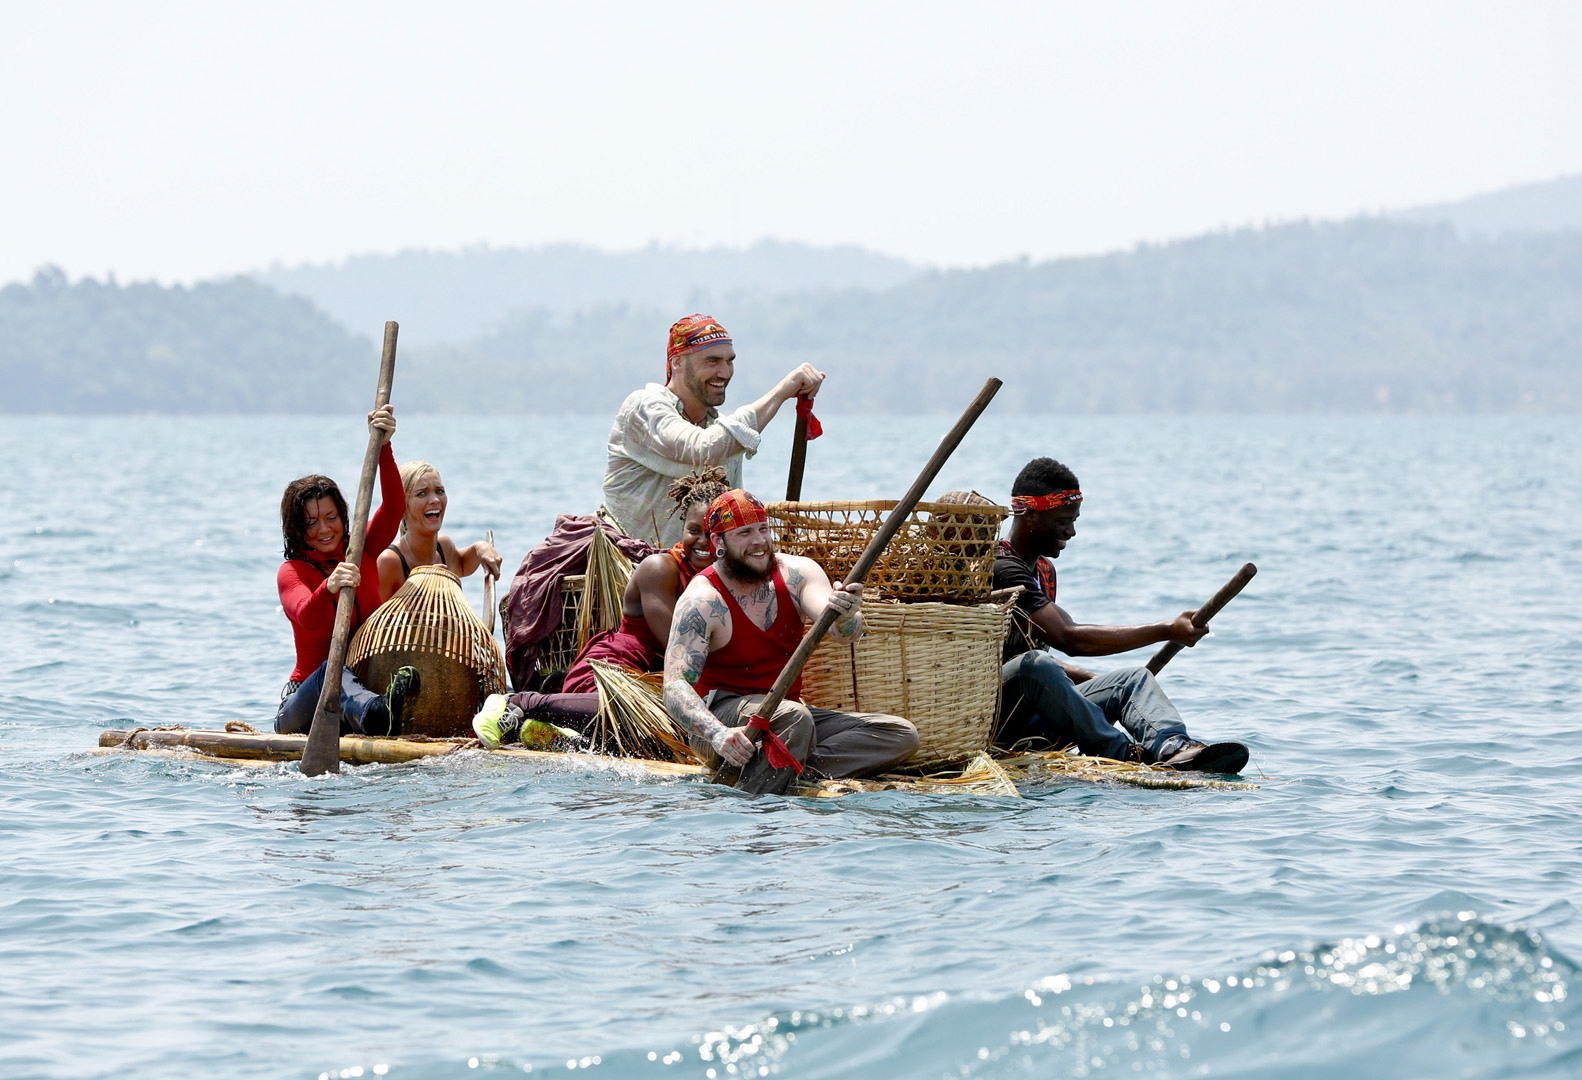 The Brawn Tribe work together to reach the shore.